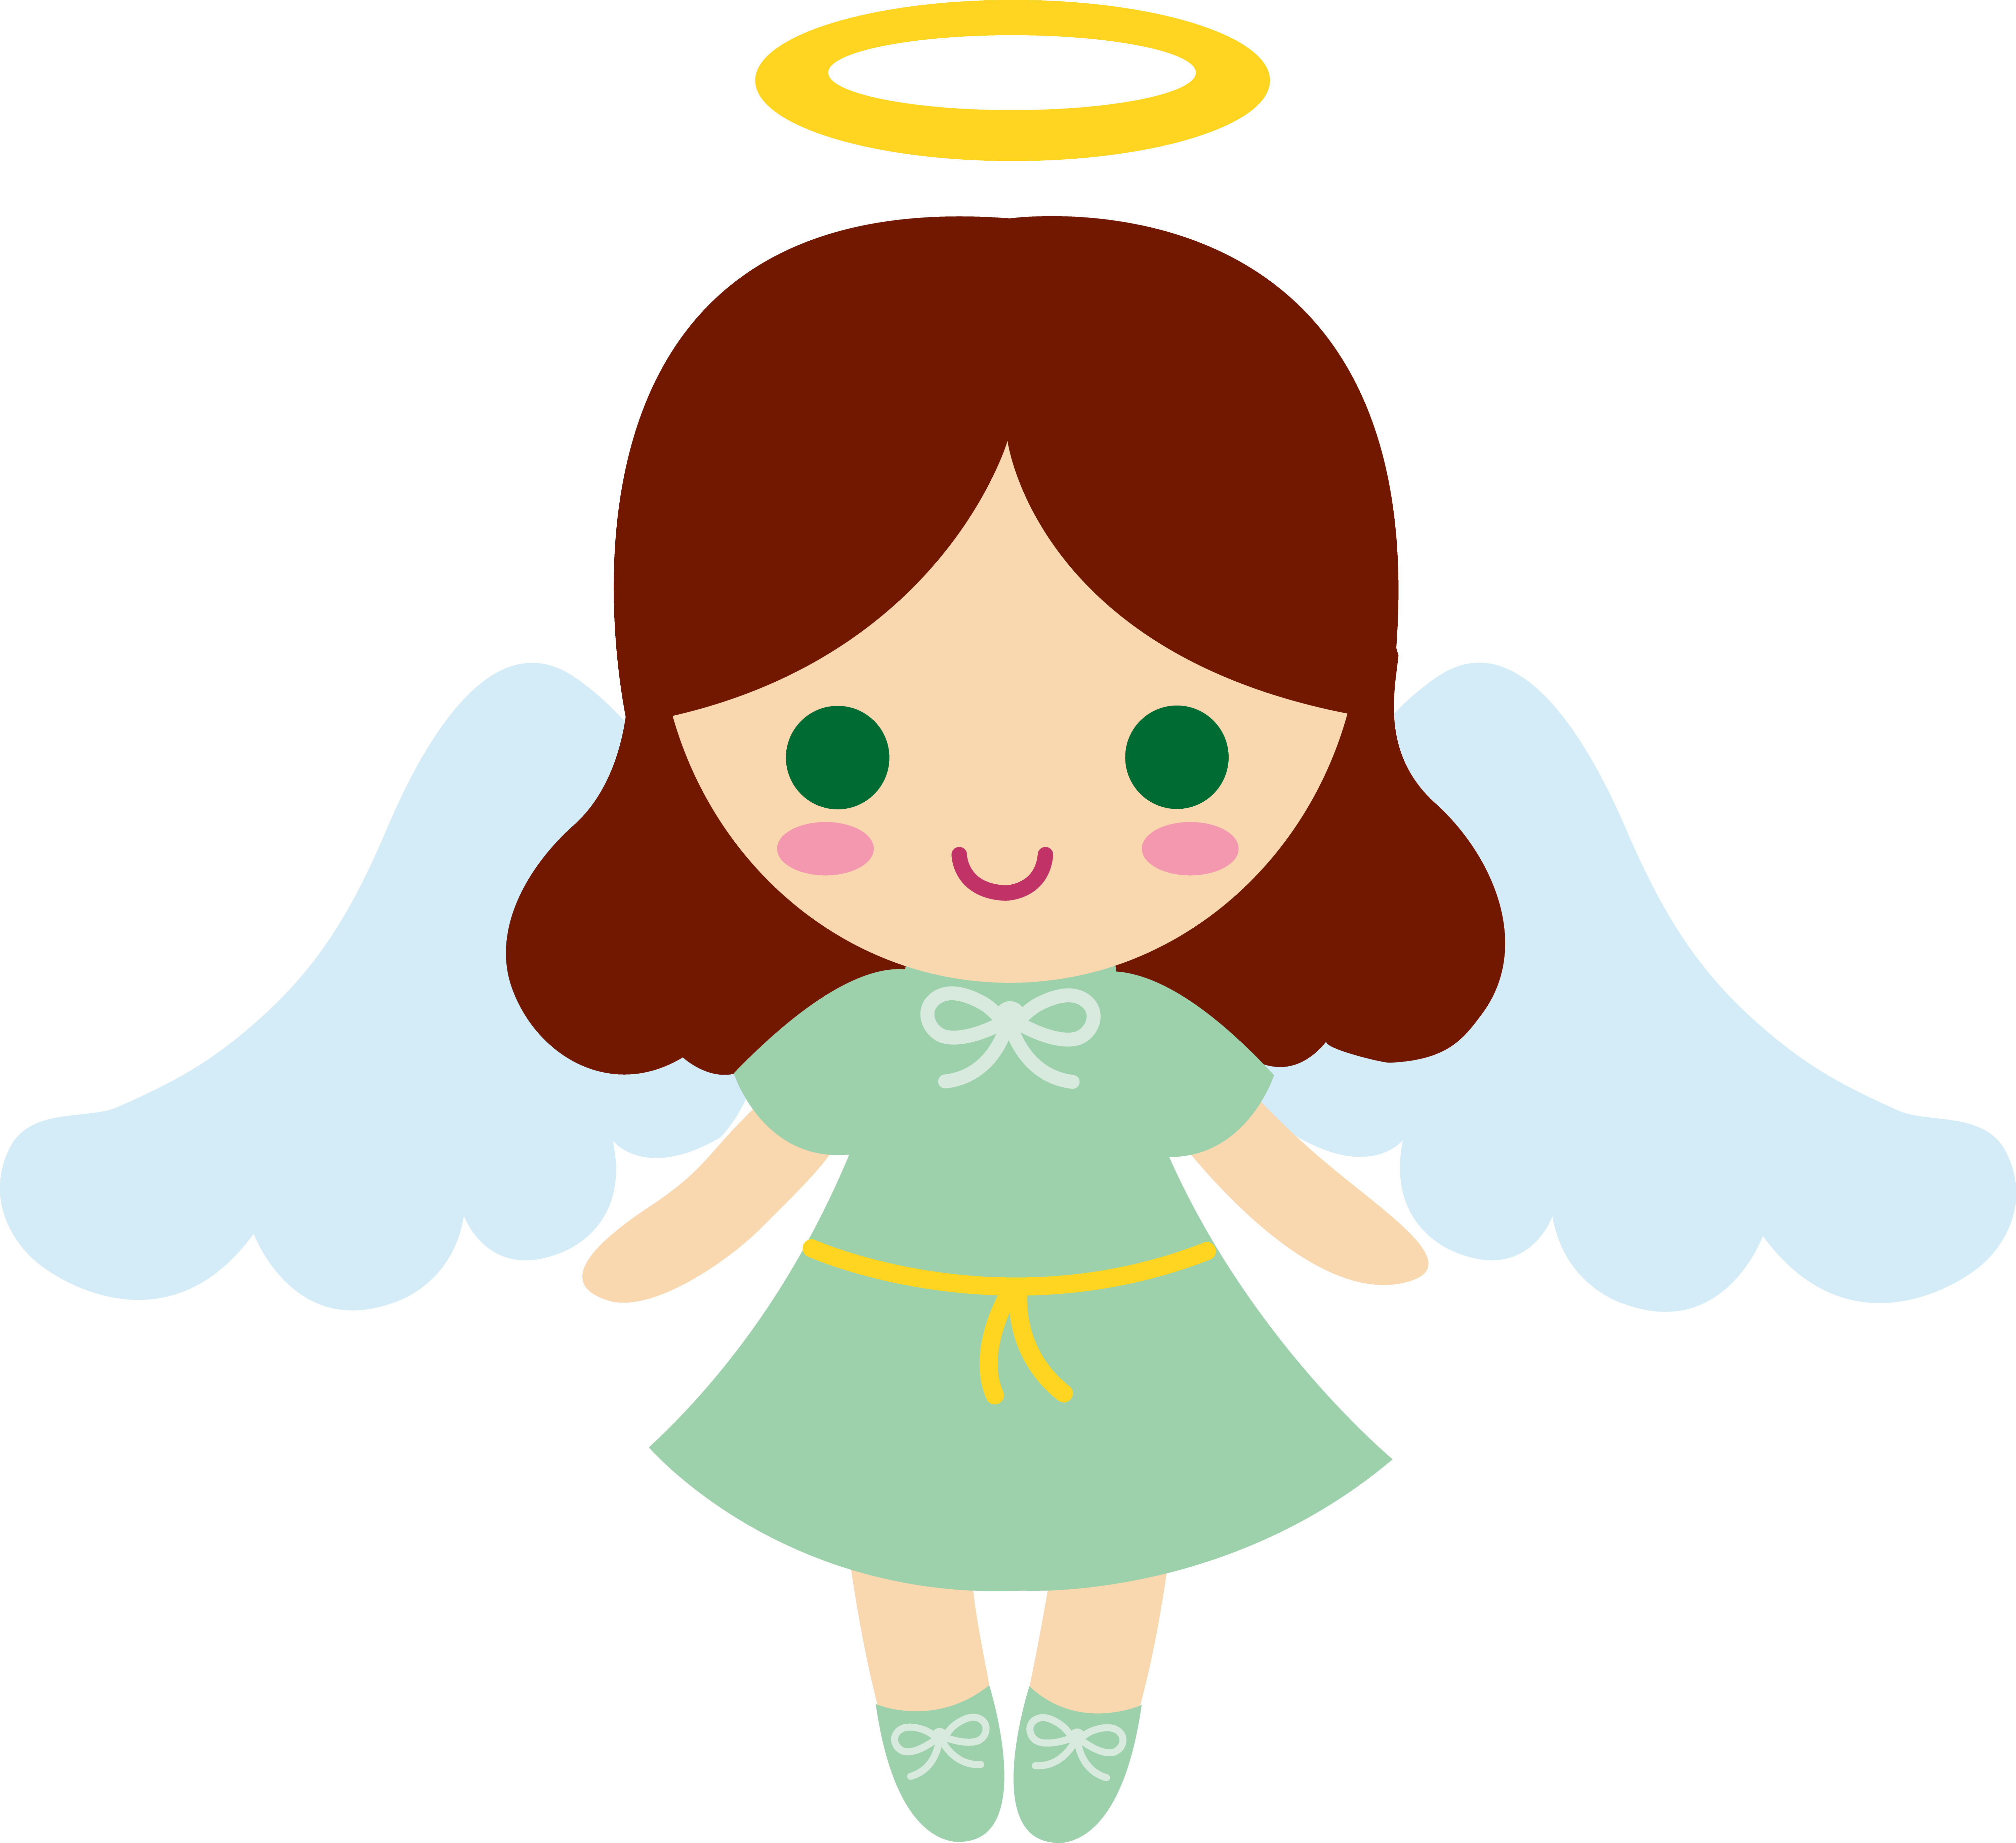 Christmas angels clipart image royalty free library Clip Art Angel & Clip Art Angel Clip Art Images - ClipartALL.com image royalty free library